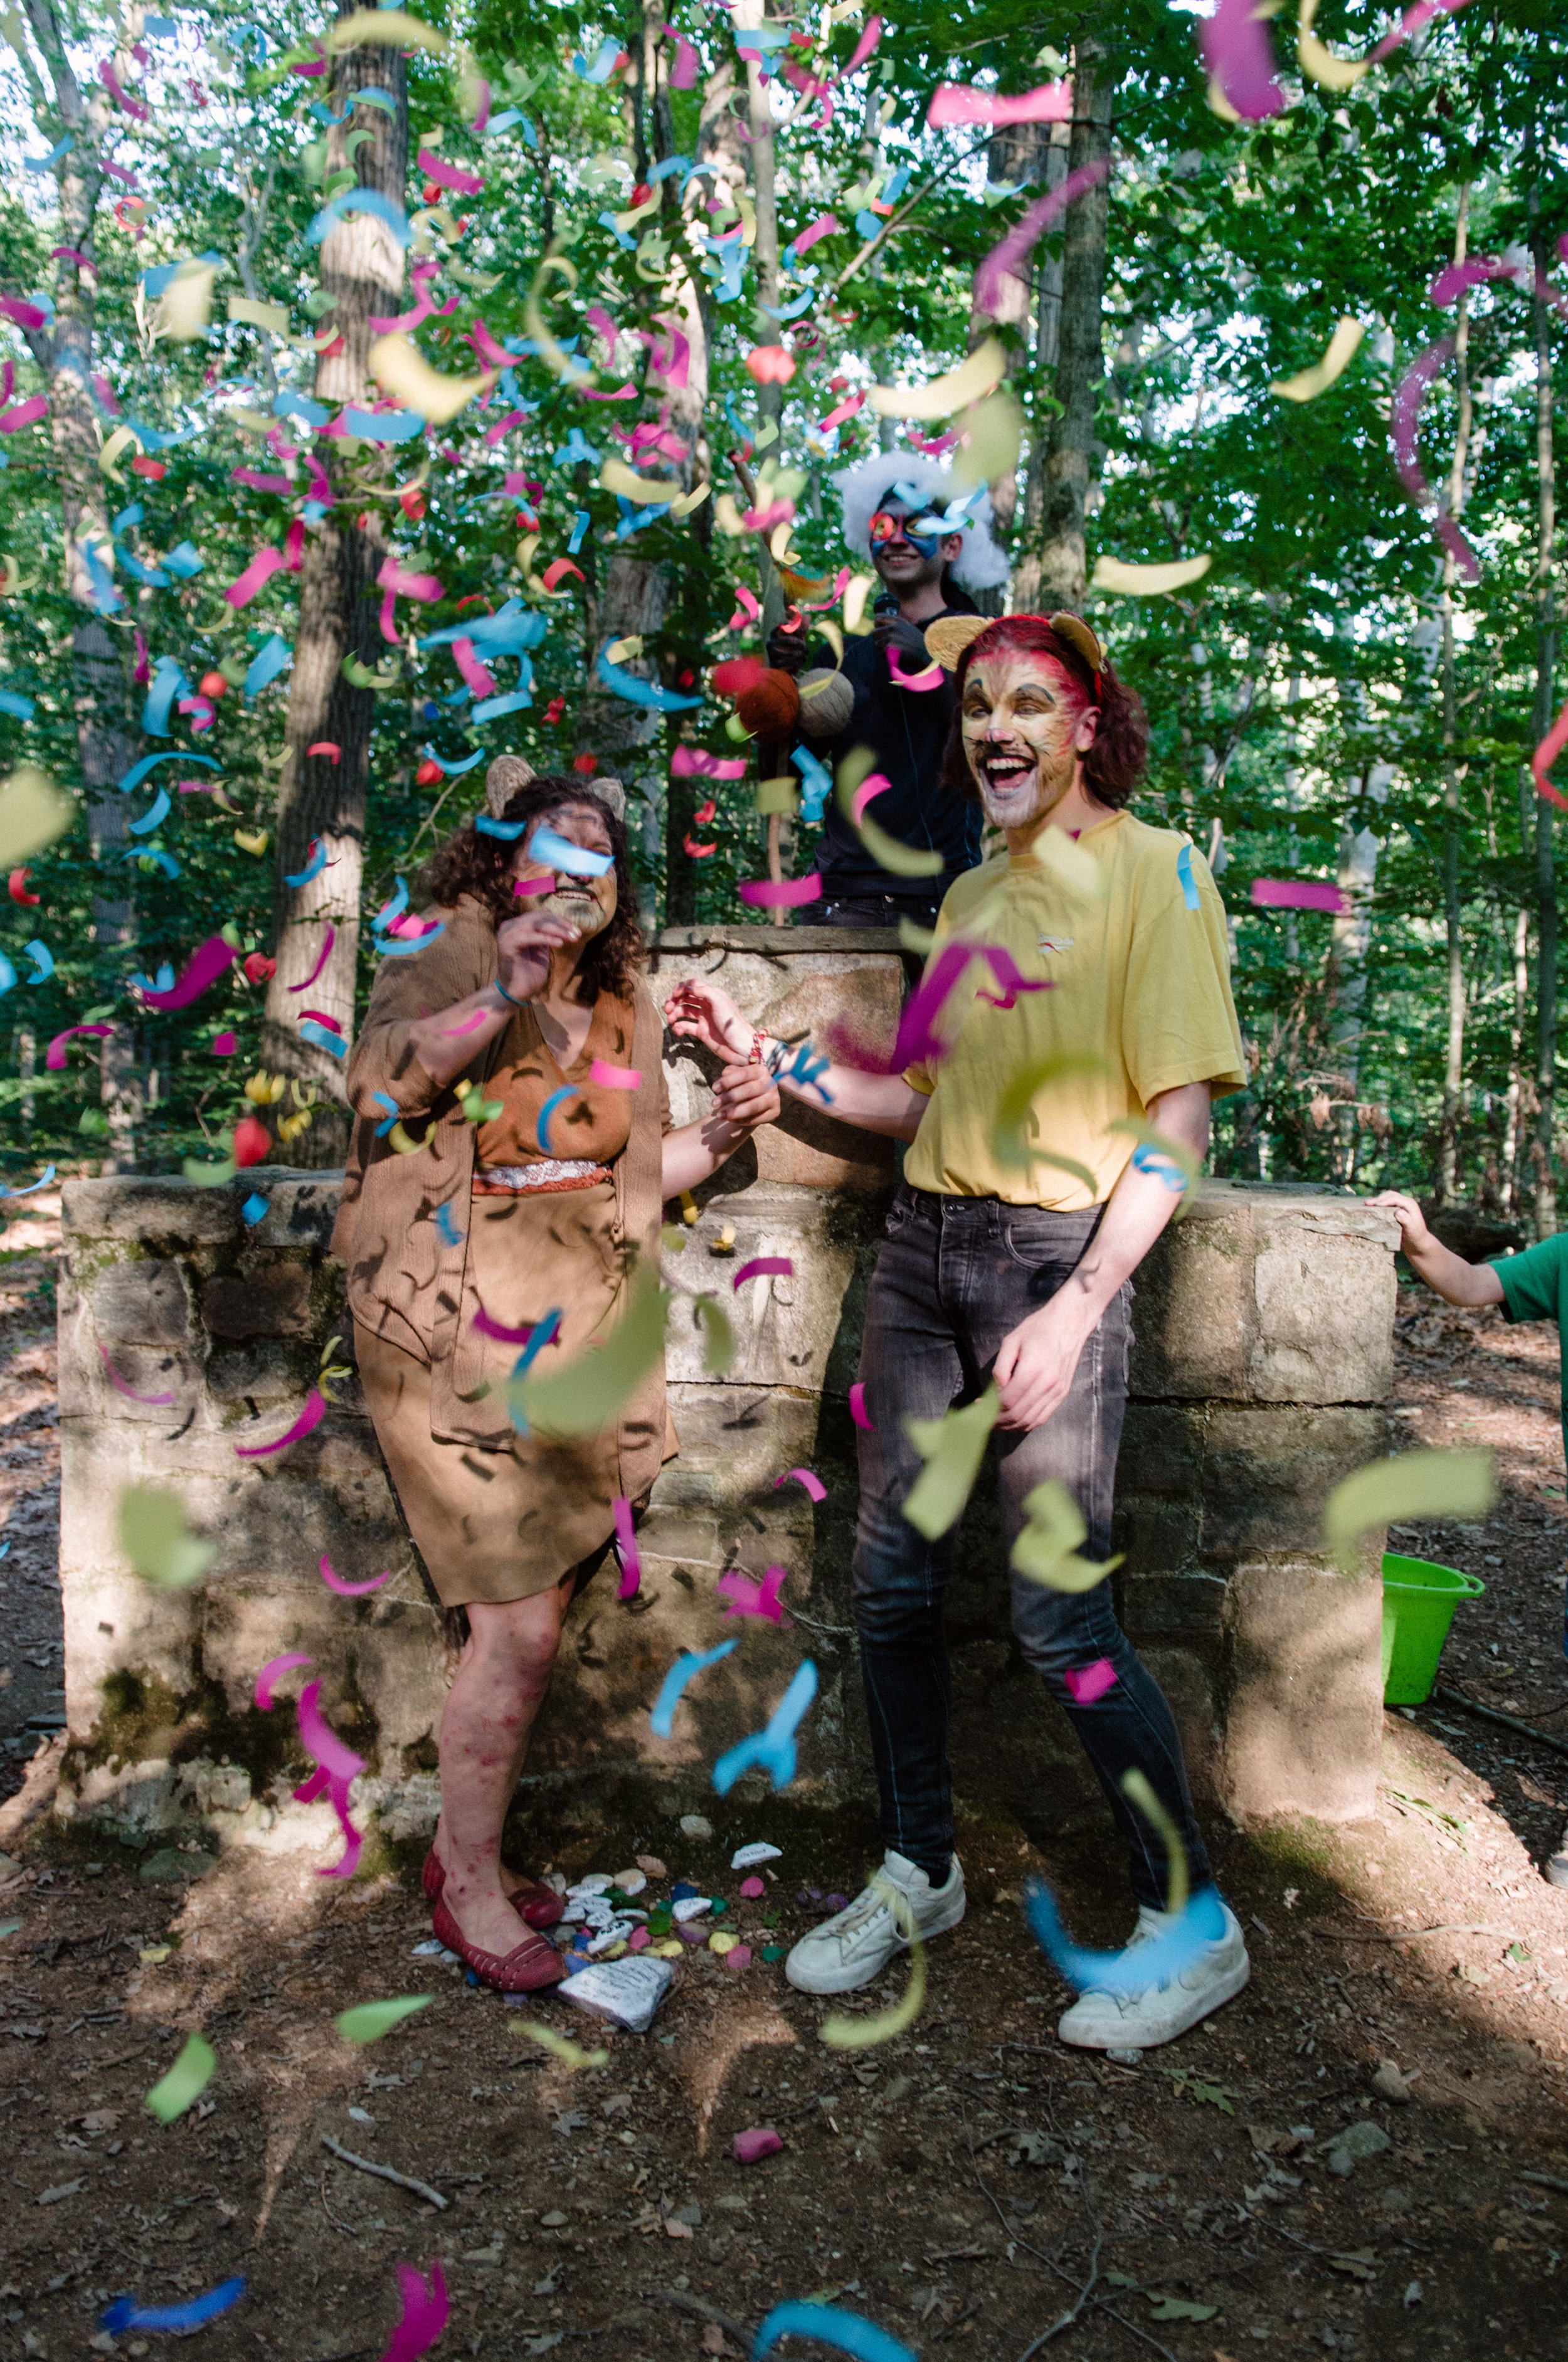 Our wacky wedding week is always hilarious! This tradition has brought together fake camp couples for over a decade!  In addition this season is slime, slime and more slime.